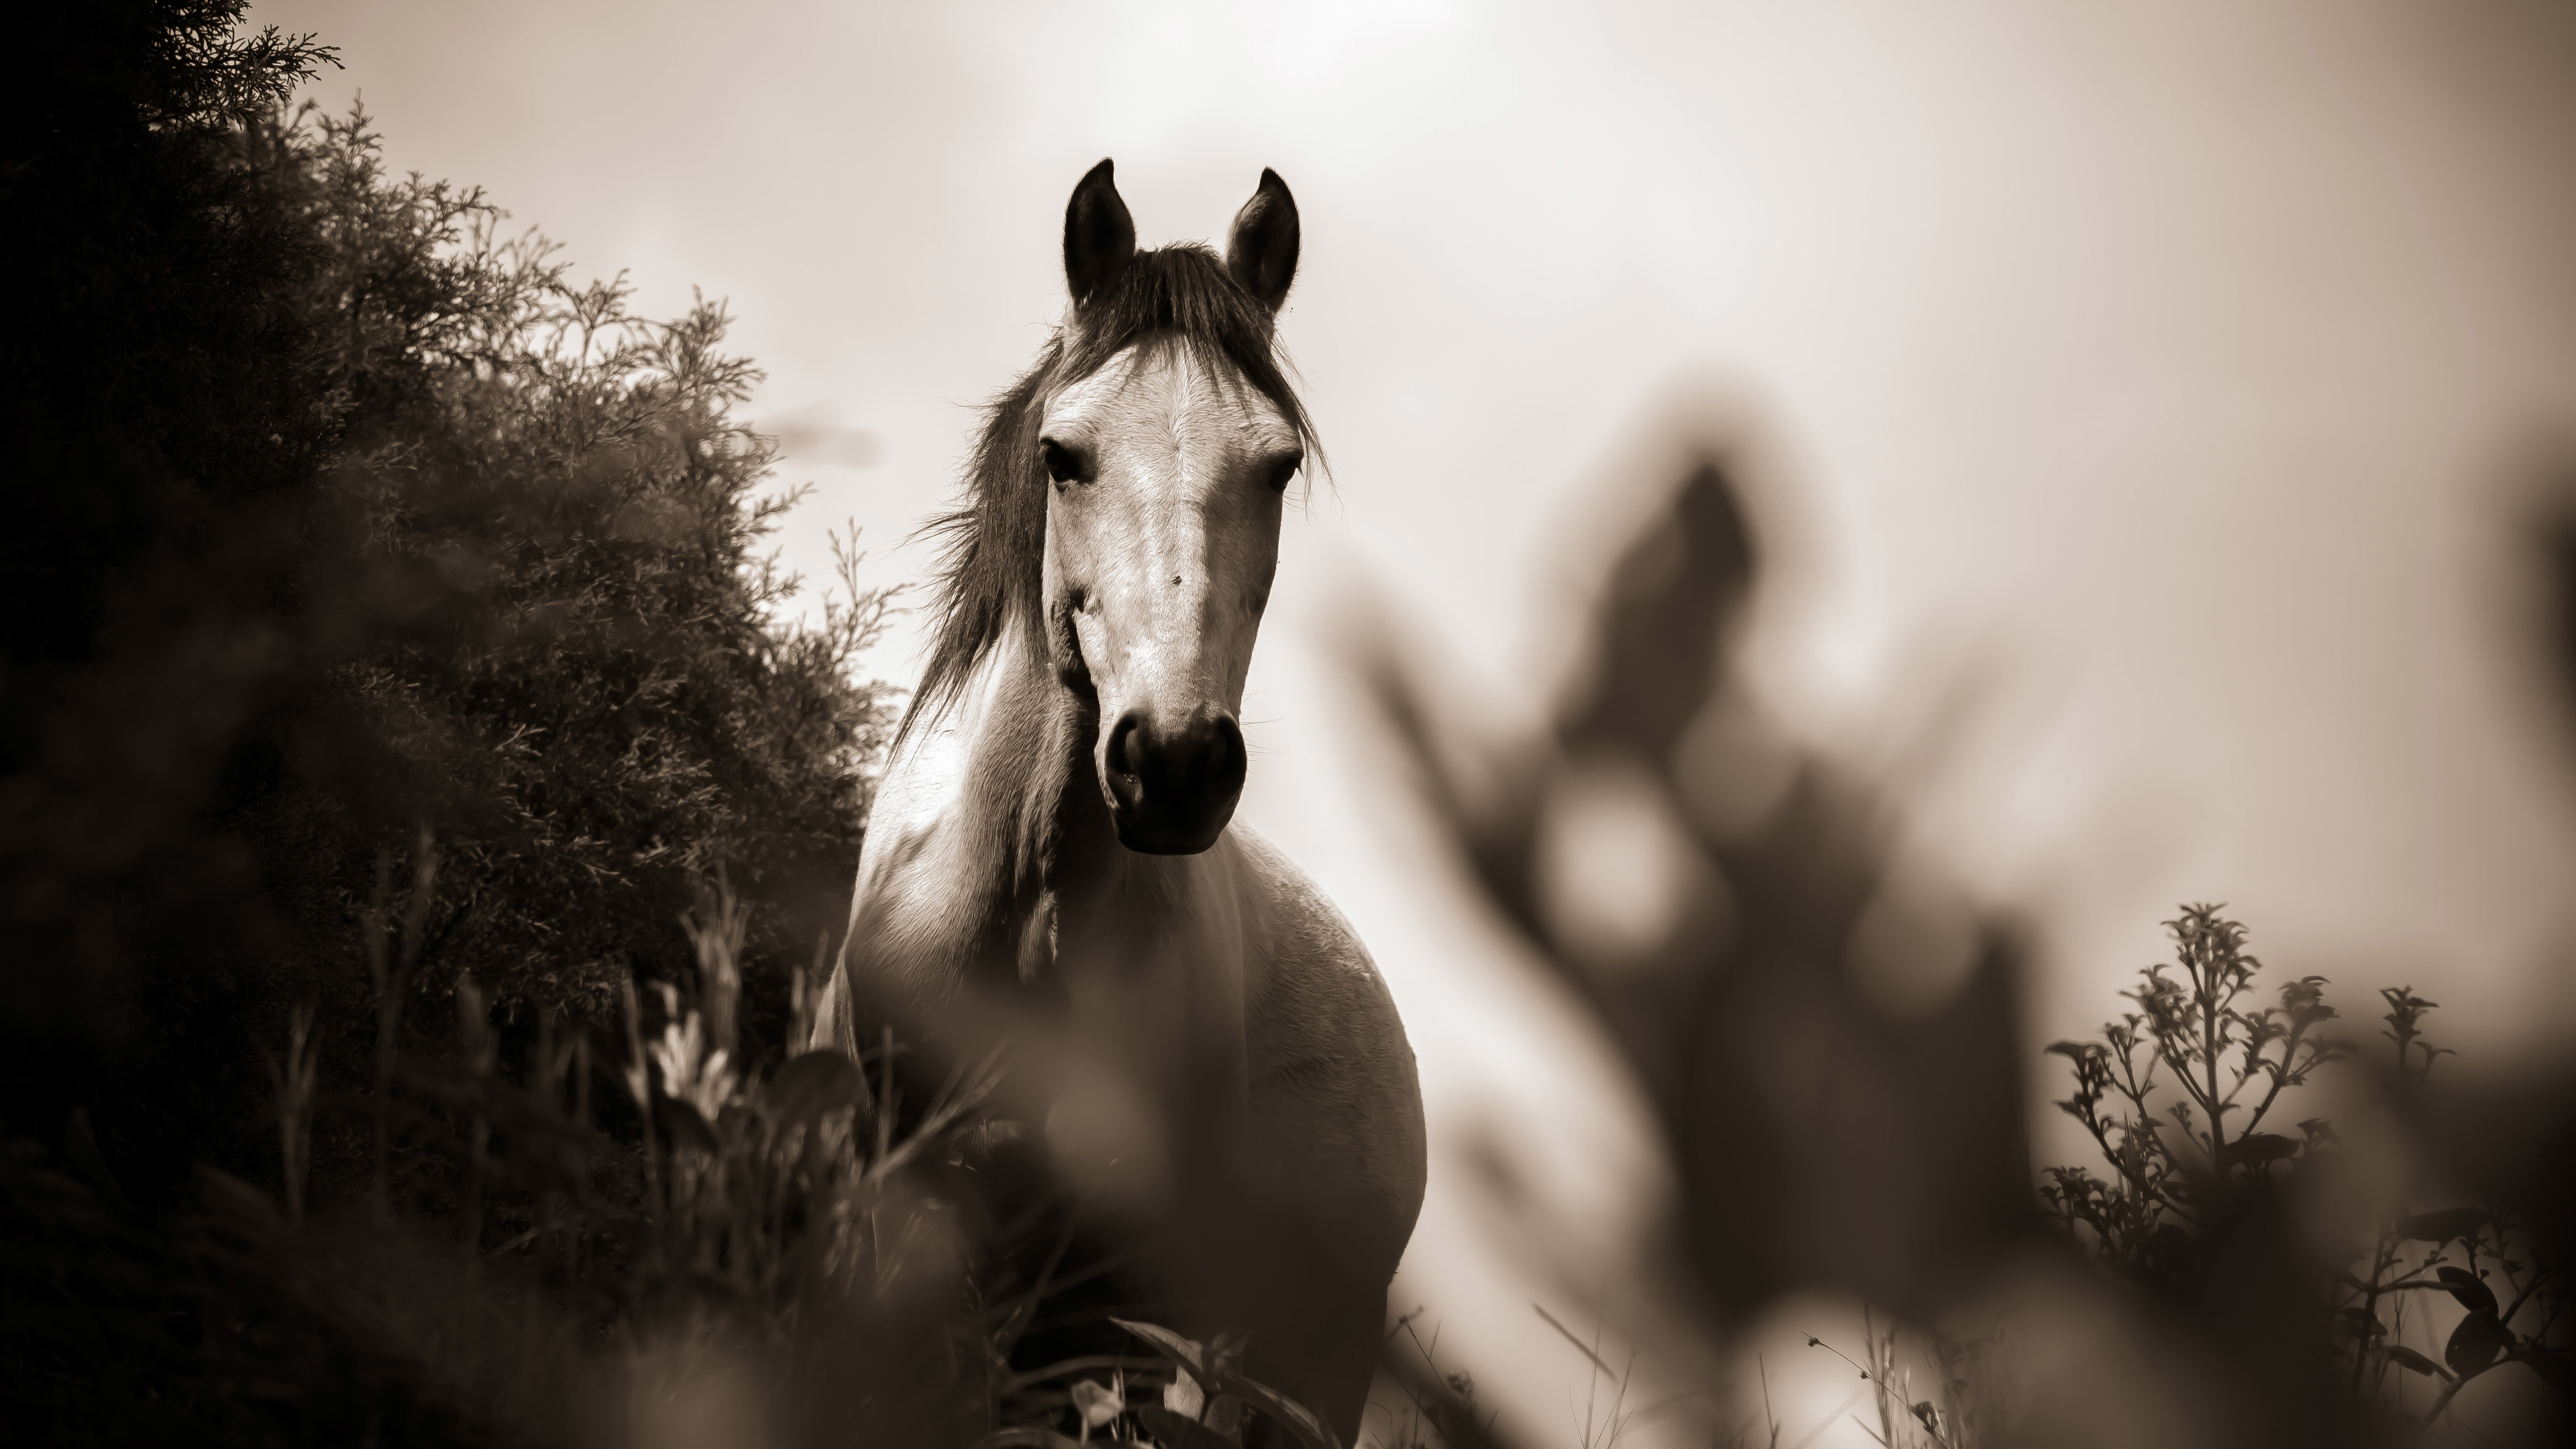 Horse Grayscale Horse Wallpapers For Laptop 3840x2160 Wallpaper Teahub Io